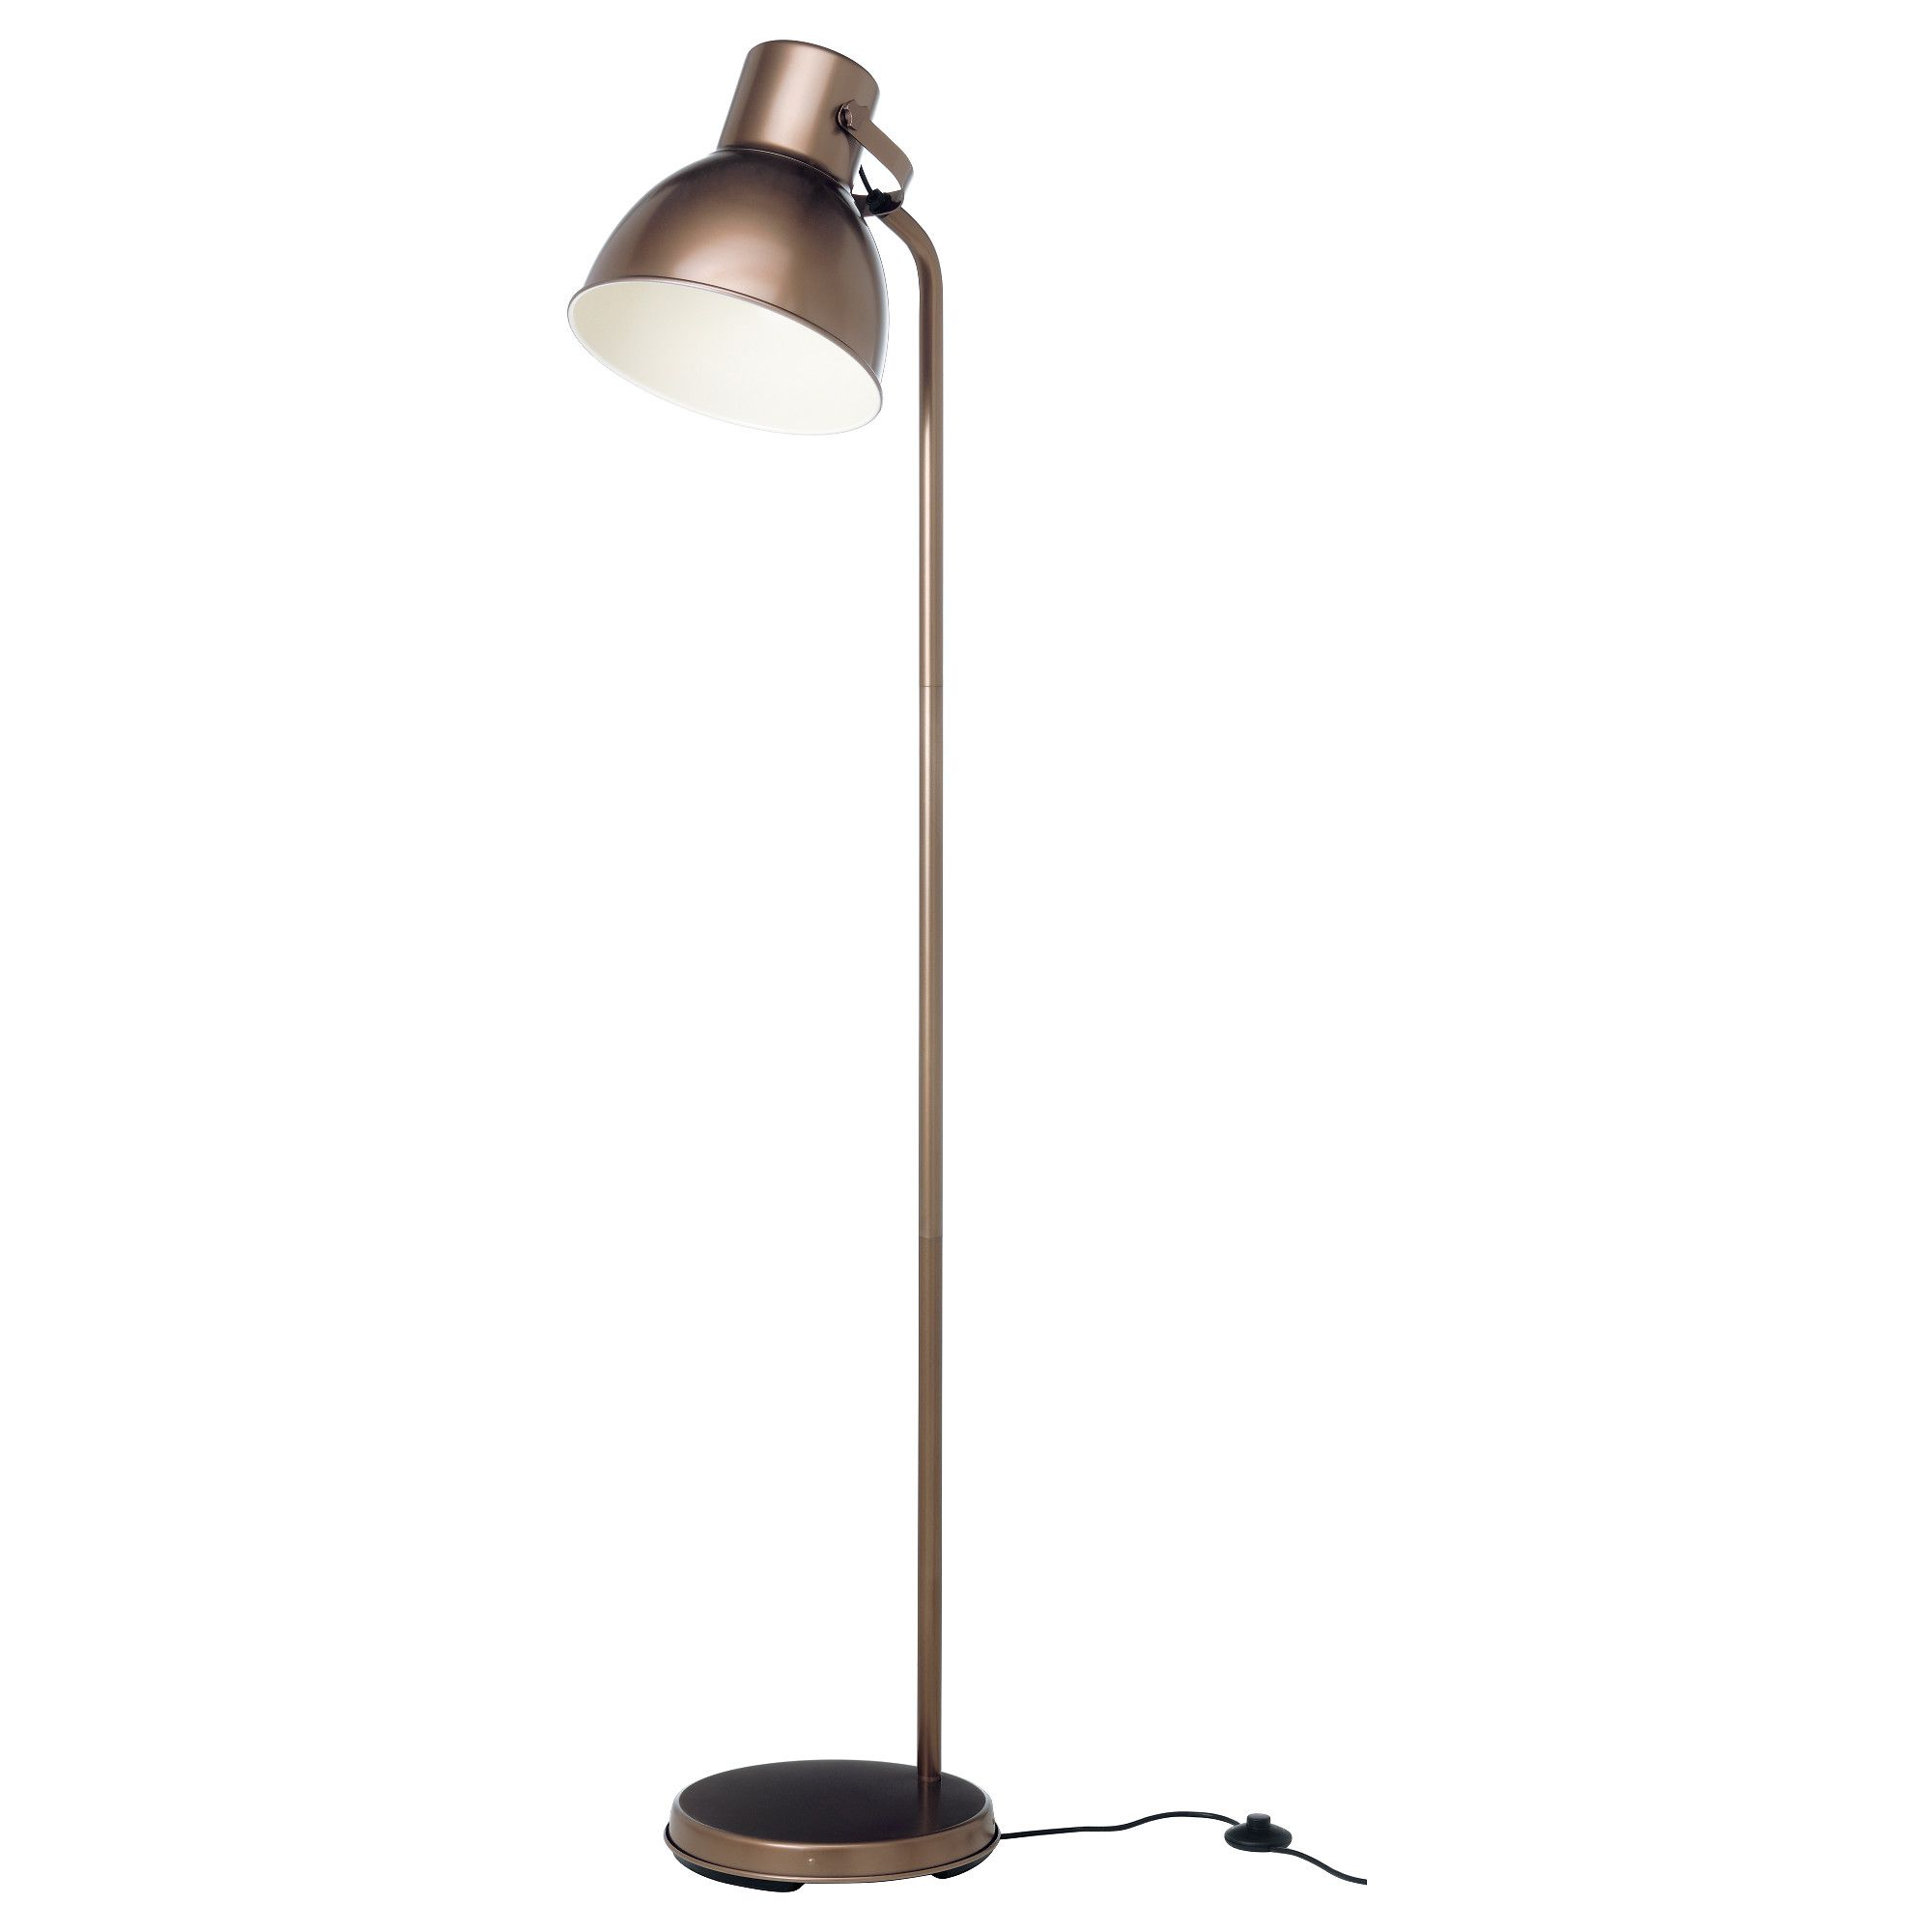 Hektar staande lamp ikea woonkamer pinterest ikea for Living lighting floor lamps